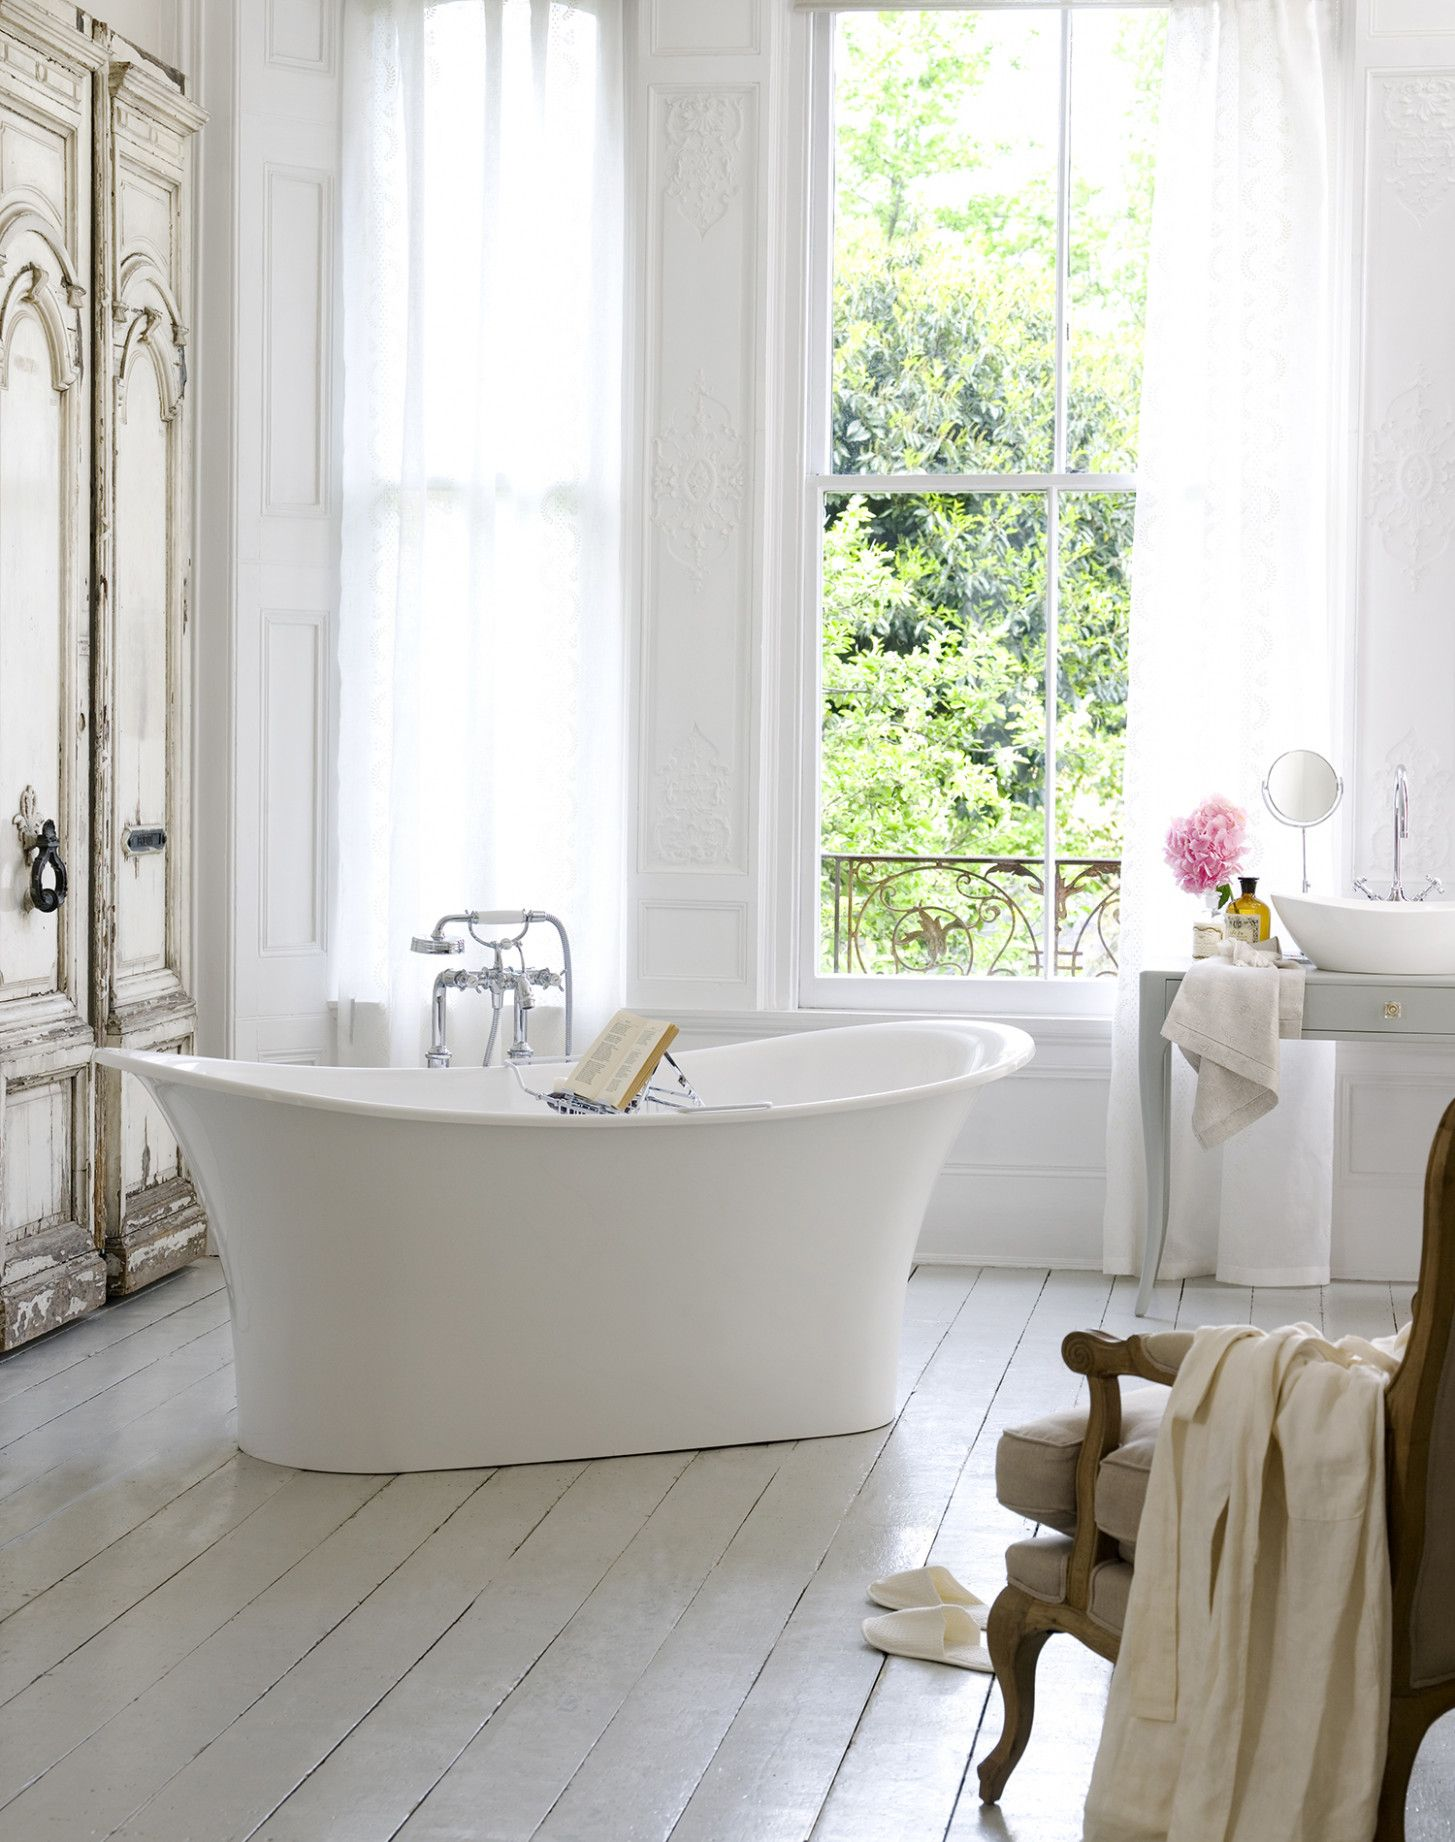 Do you know how many people show up at clawfoot bathtub ideas